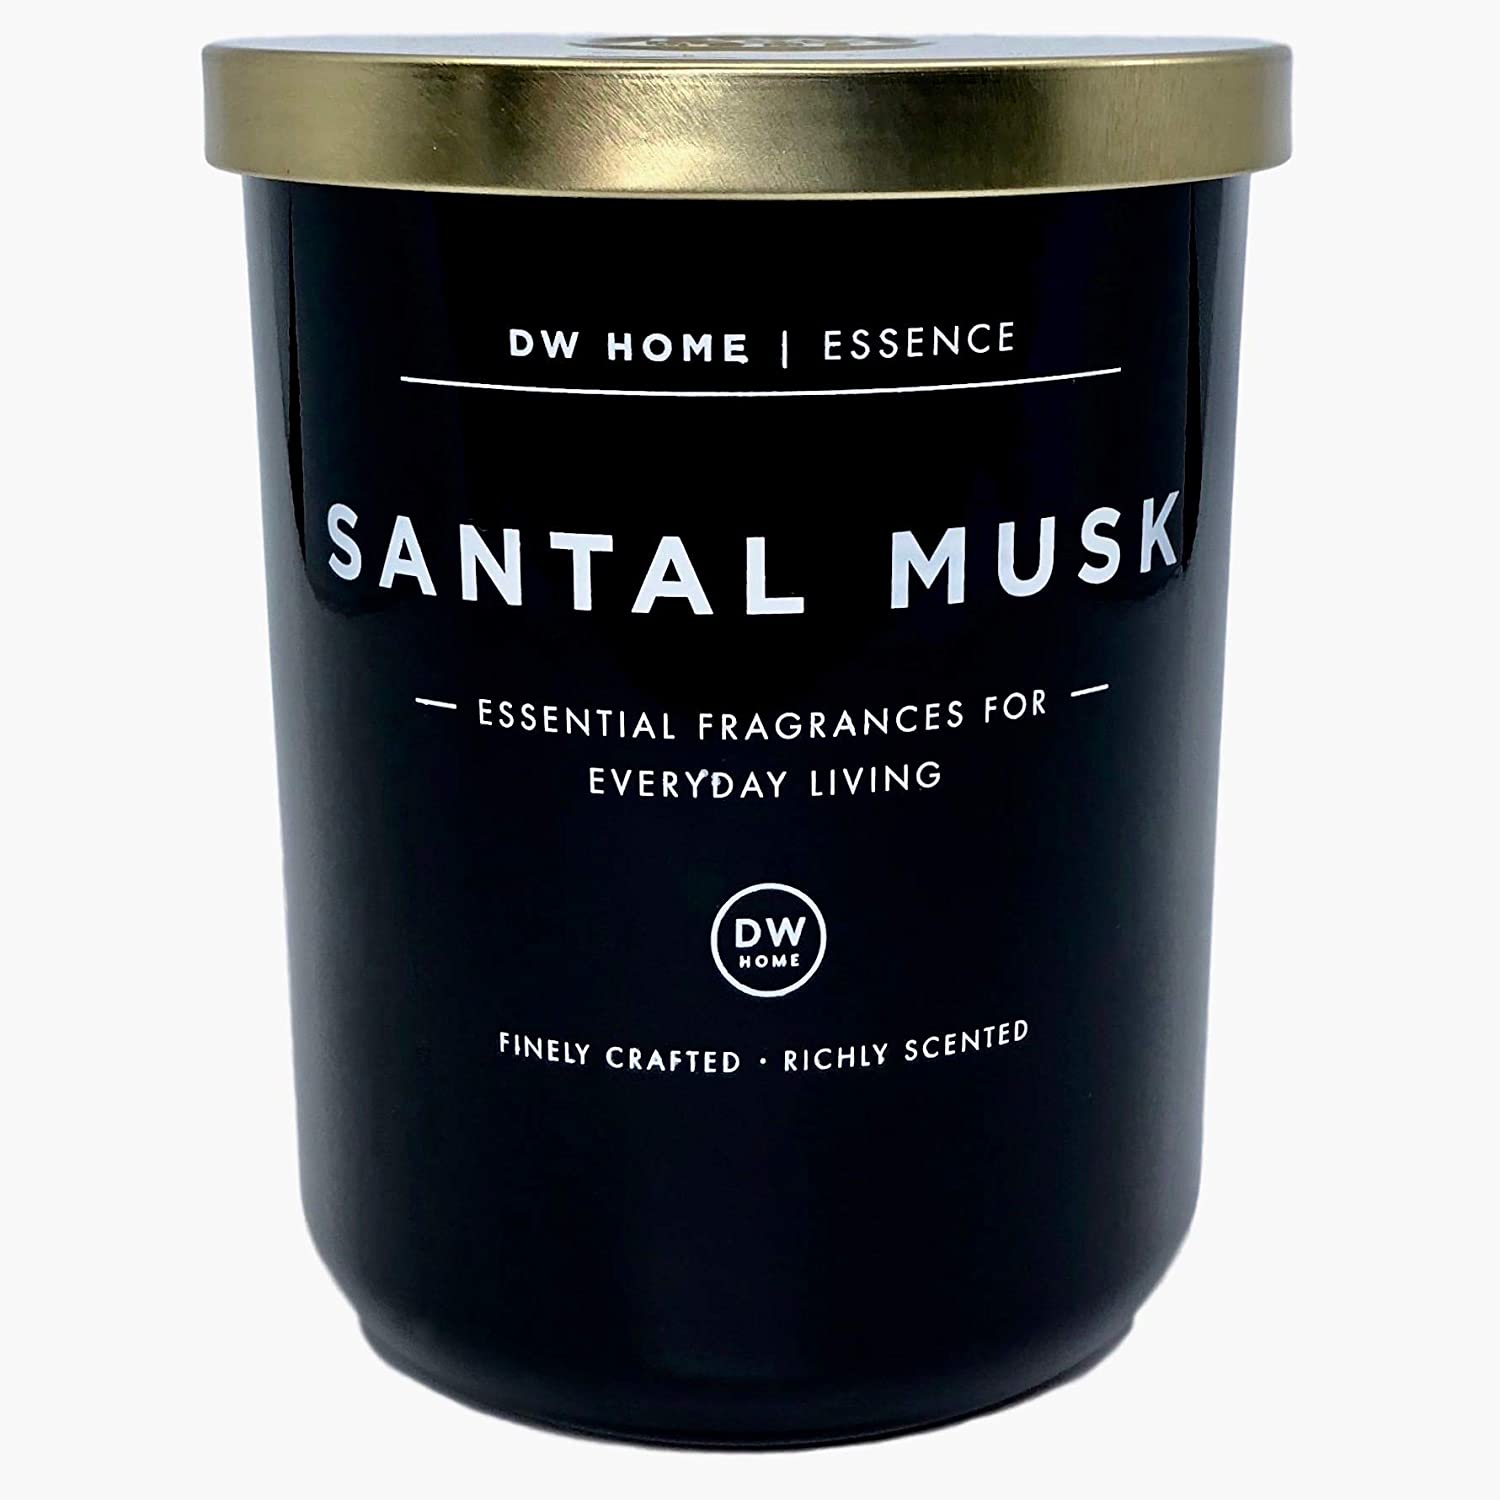 DW Home Large Santal Musk Scented Soy Wax Blend Candle Essential Fragrances for Everyday Living